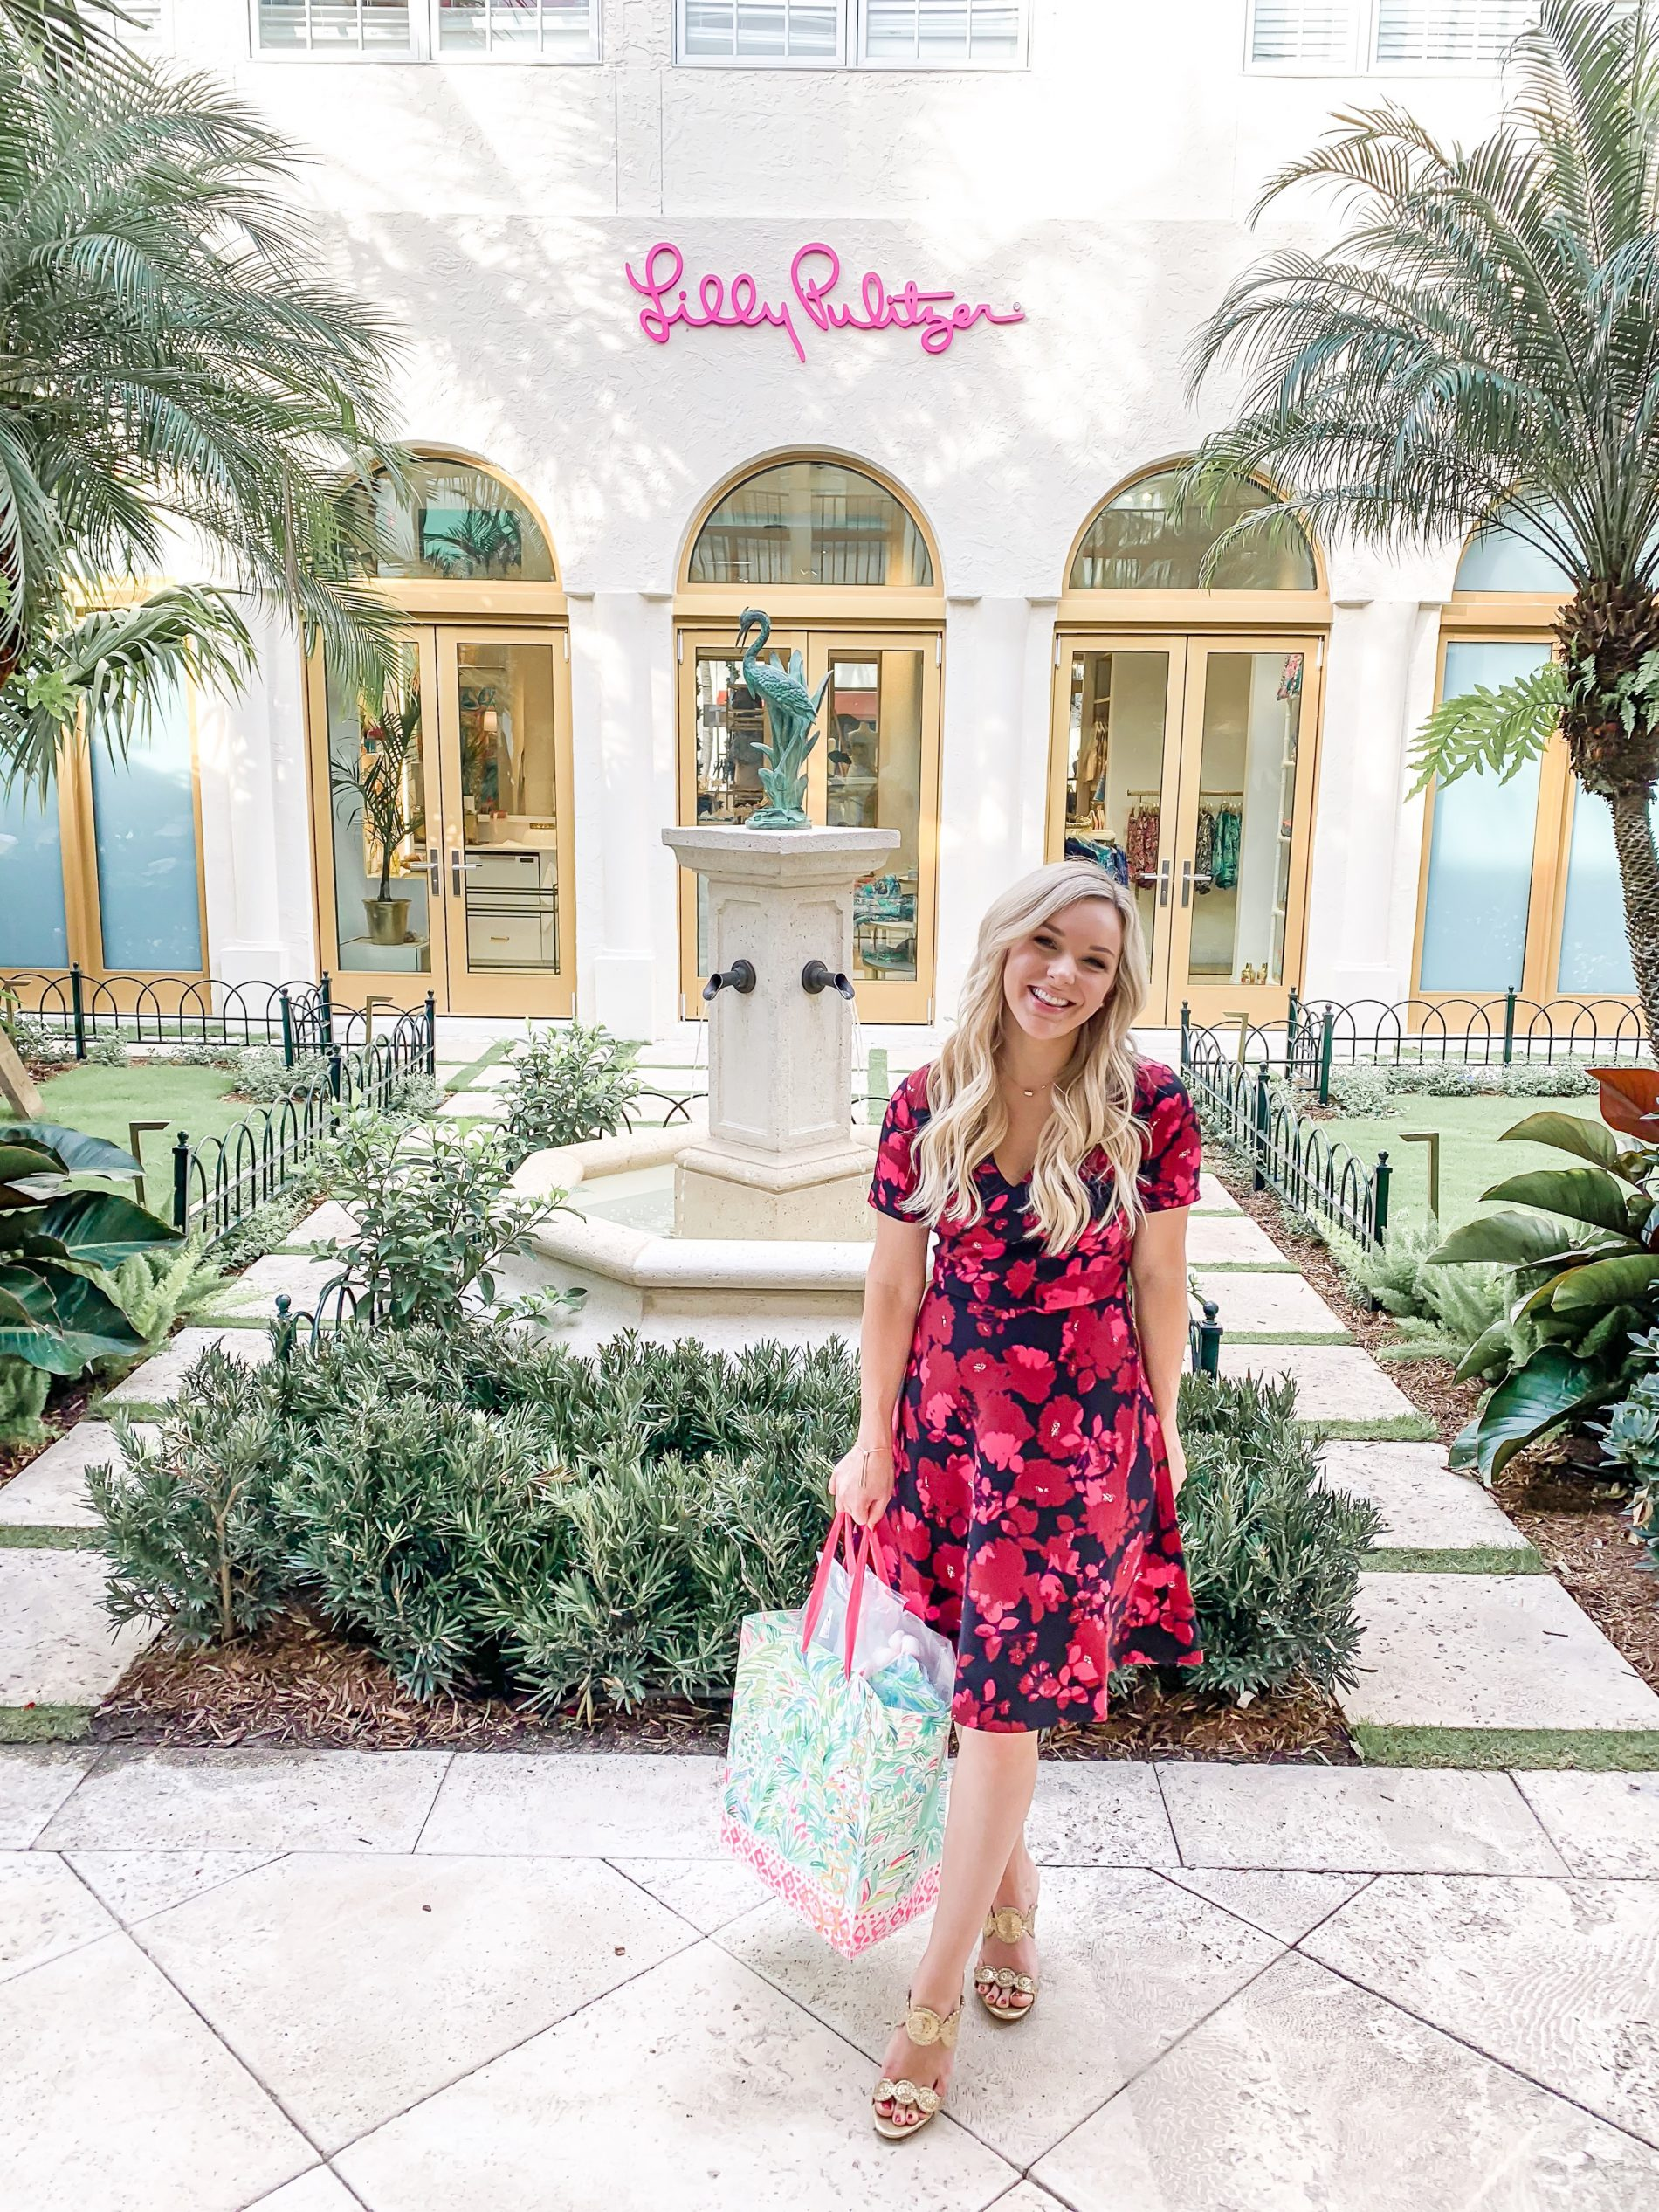 Lilly Pulitzer After Party Sale January 2019 - SHANNON SULLIVAN